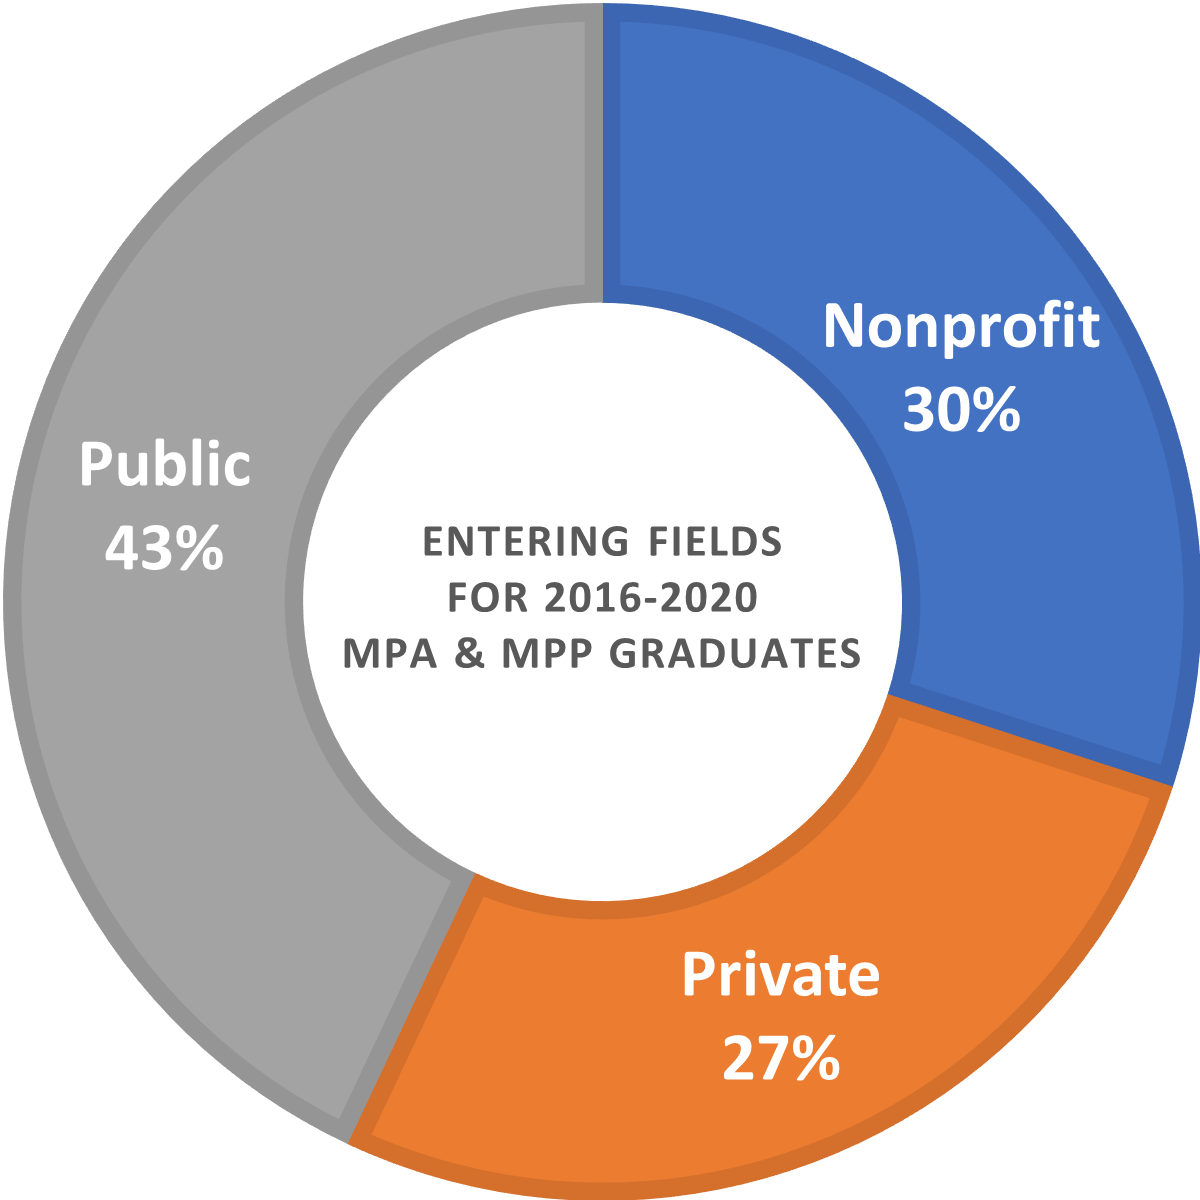 Pie chart outlining entering fields of MPA and MPP 2015-2017 graduates: 43% nonprofit, 32% public, and 25% private.